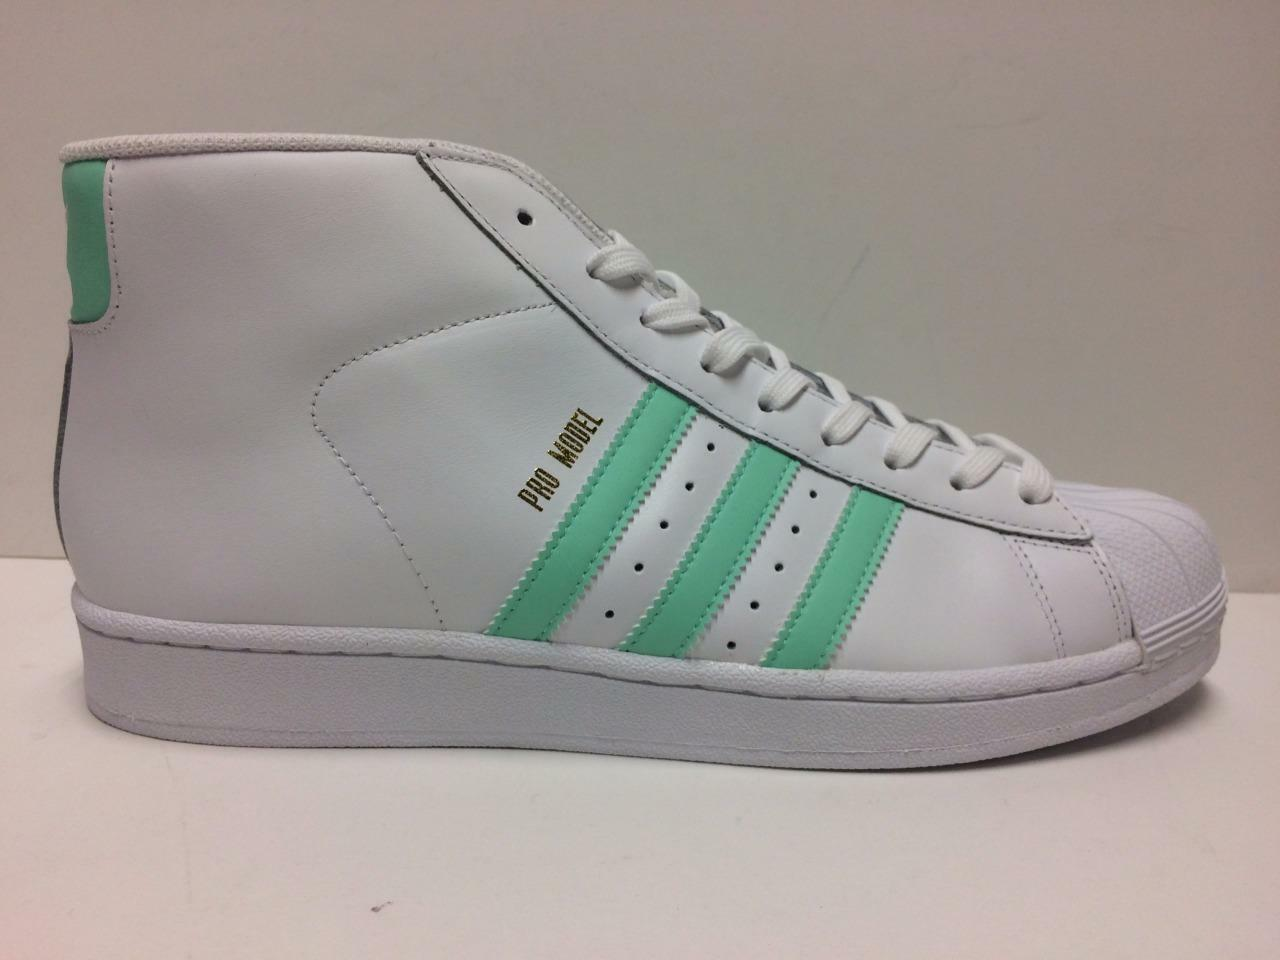 ADIDAS ORIGINALS PRO MODEL BY3728 FOOTWEAR RUNNING WHITE/EASTER GREEN/GOLD MET